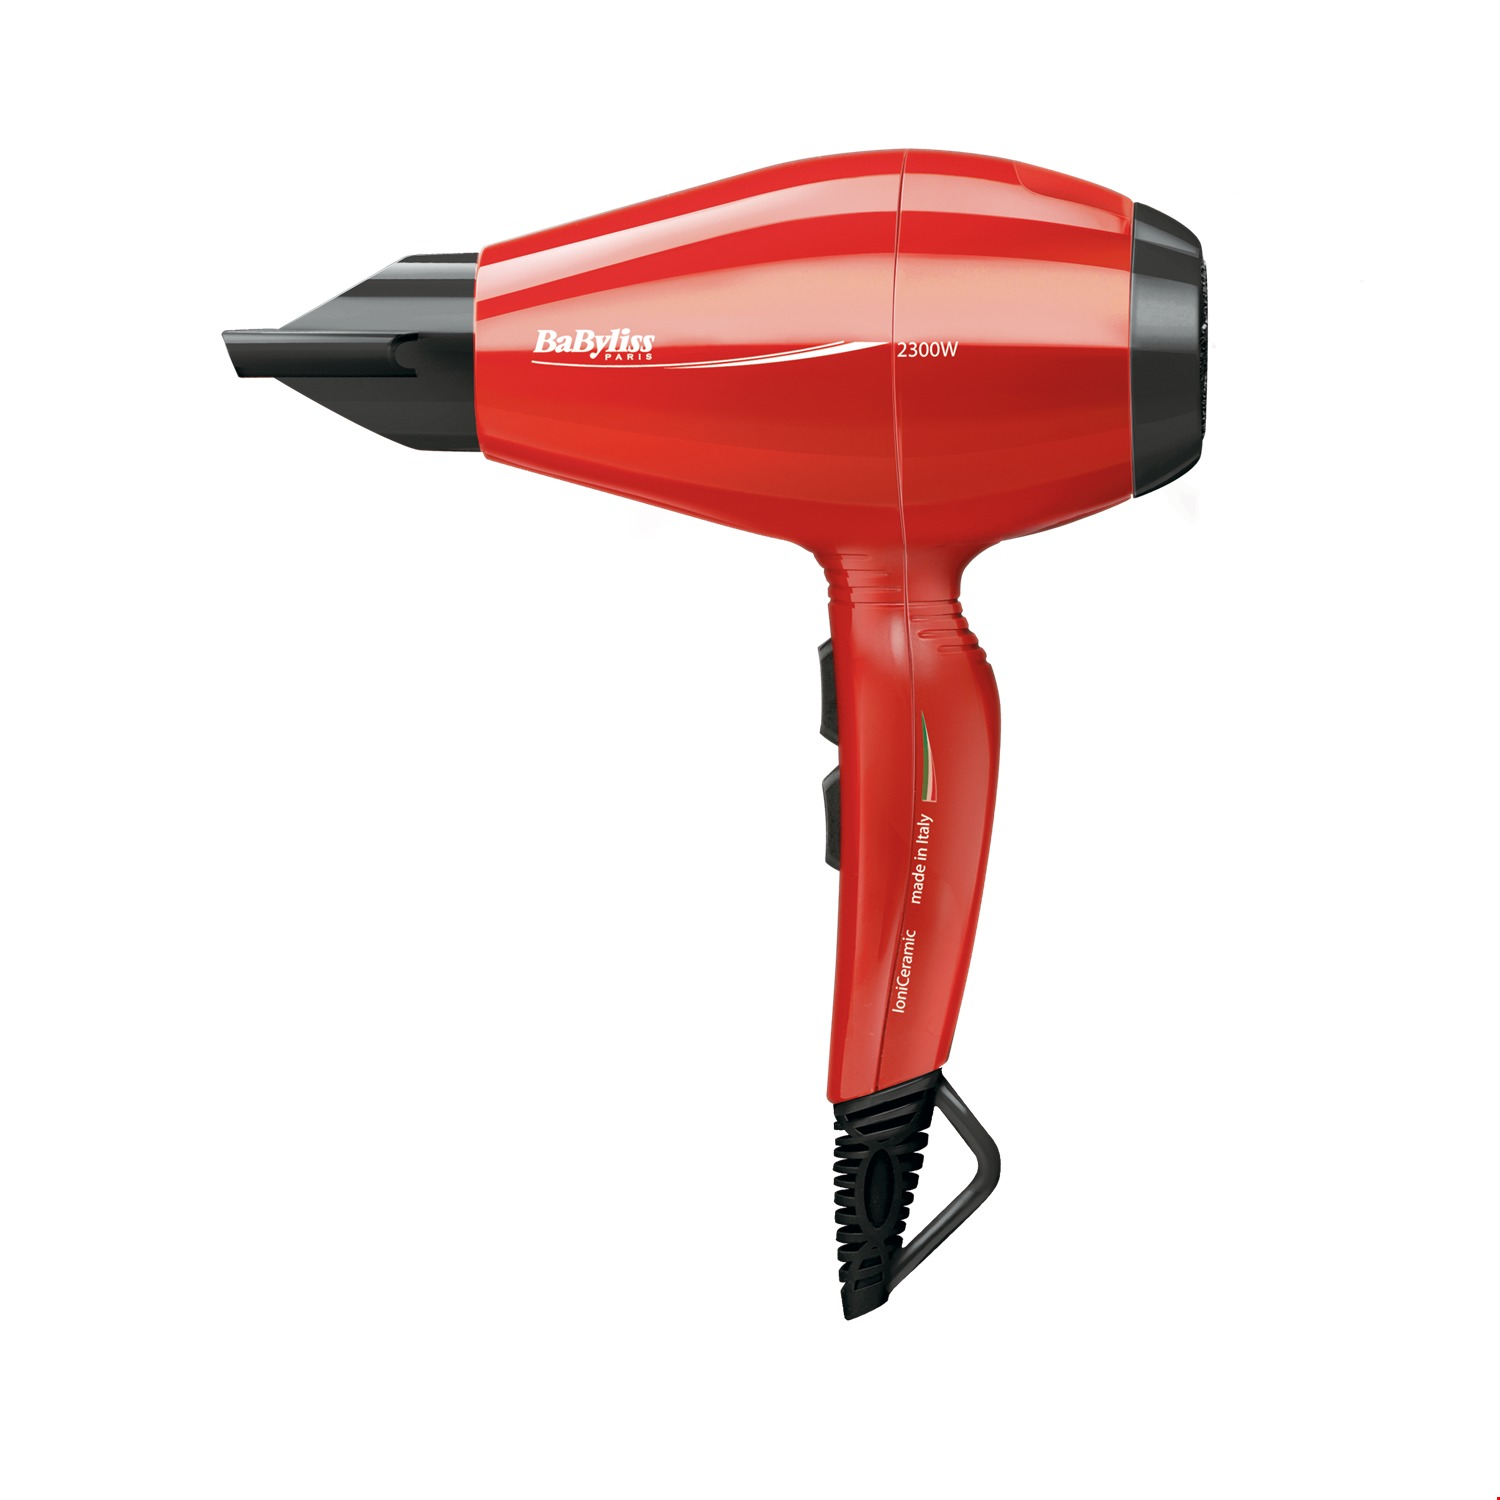 Afbeelding van product Babyliss 6615E Le Pro Ultimate Föhn Red Haardroger